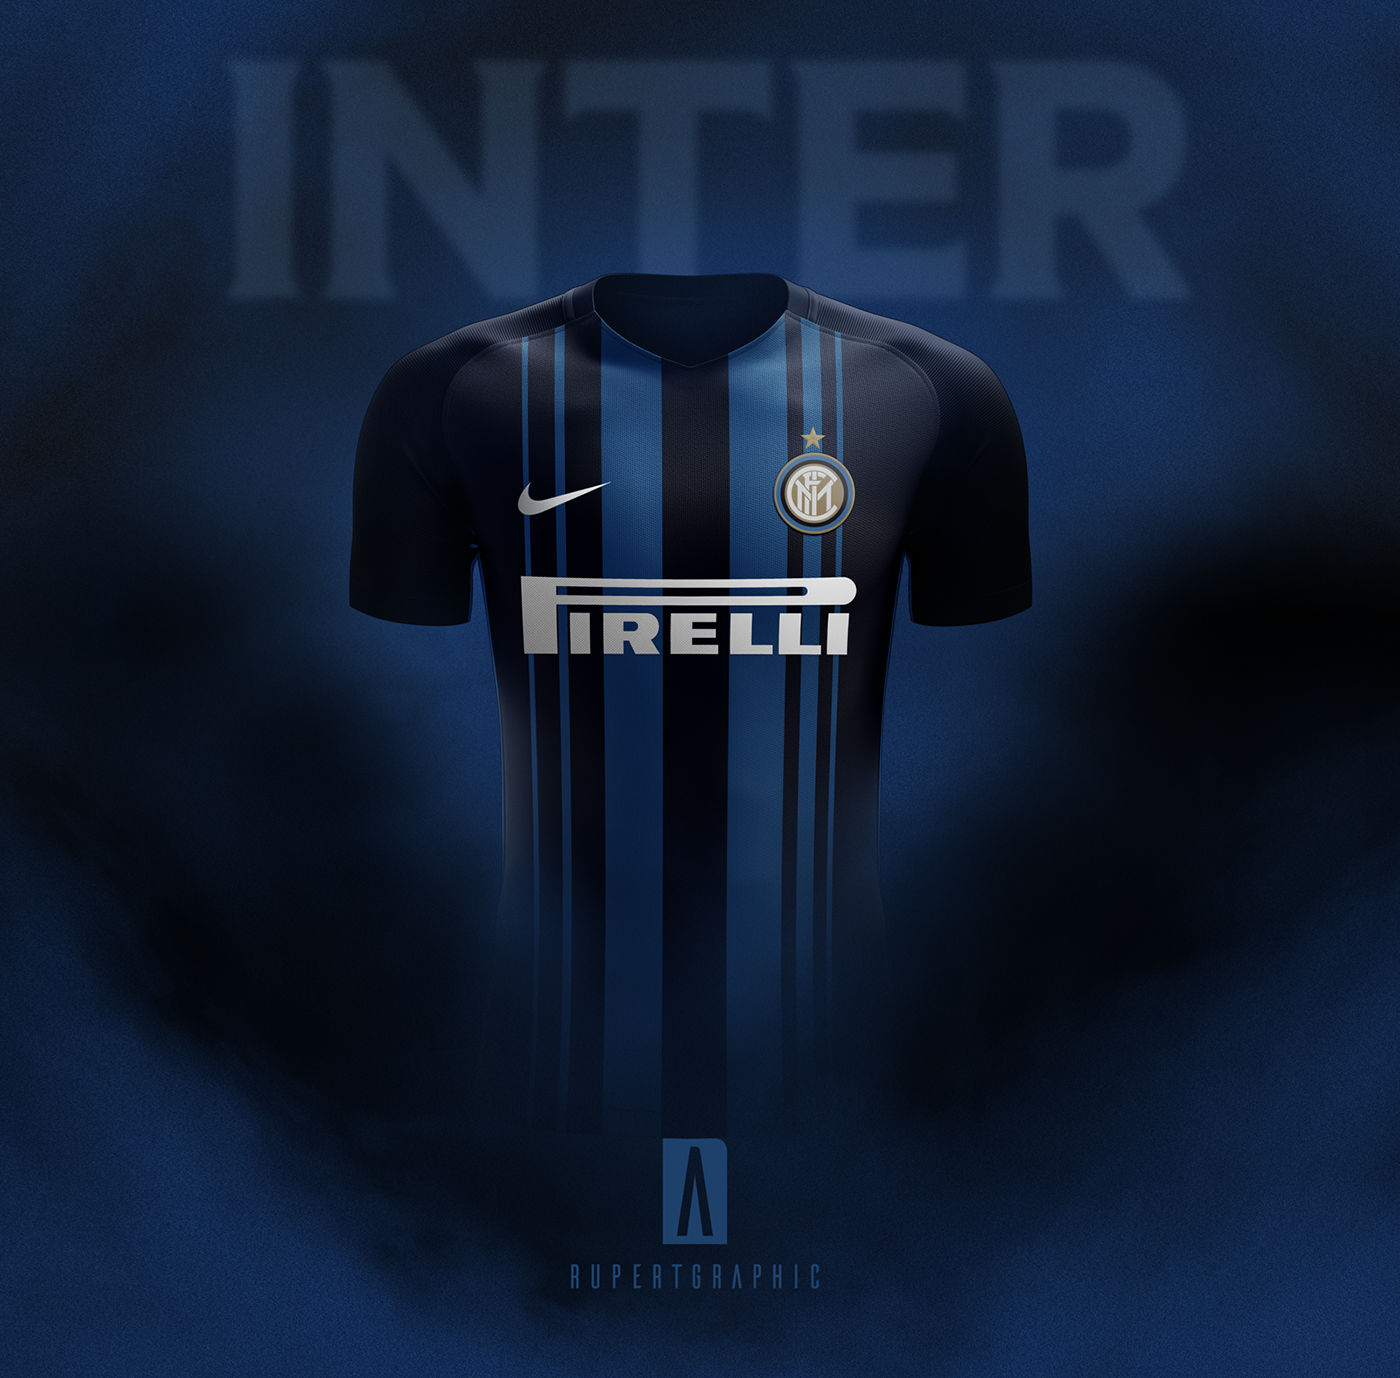 4a94b5ec4be Inter 18 19 Home kit - Rumors on Behance